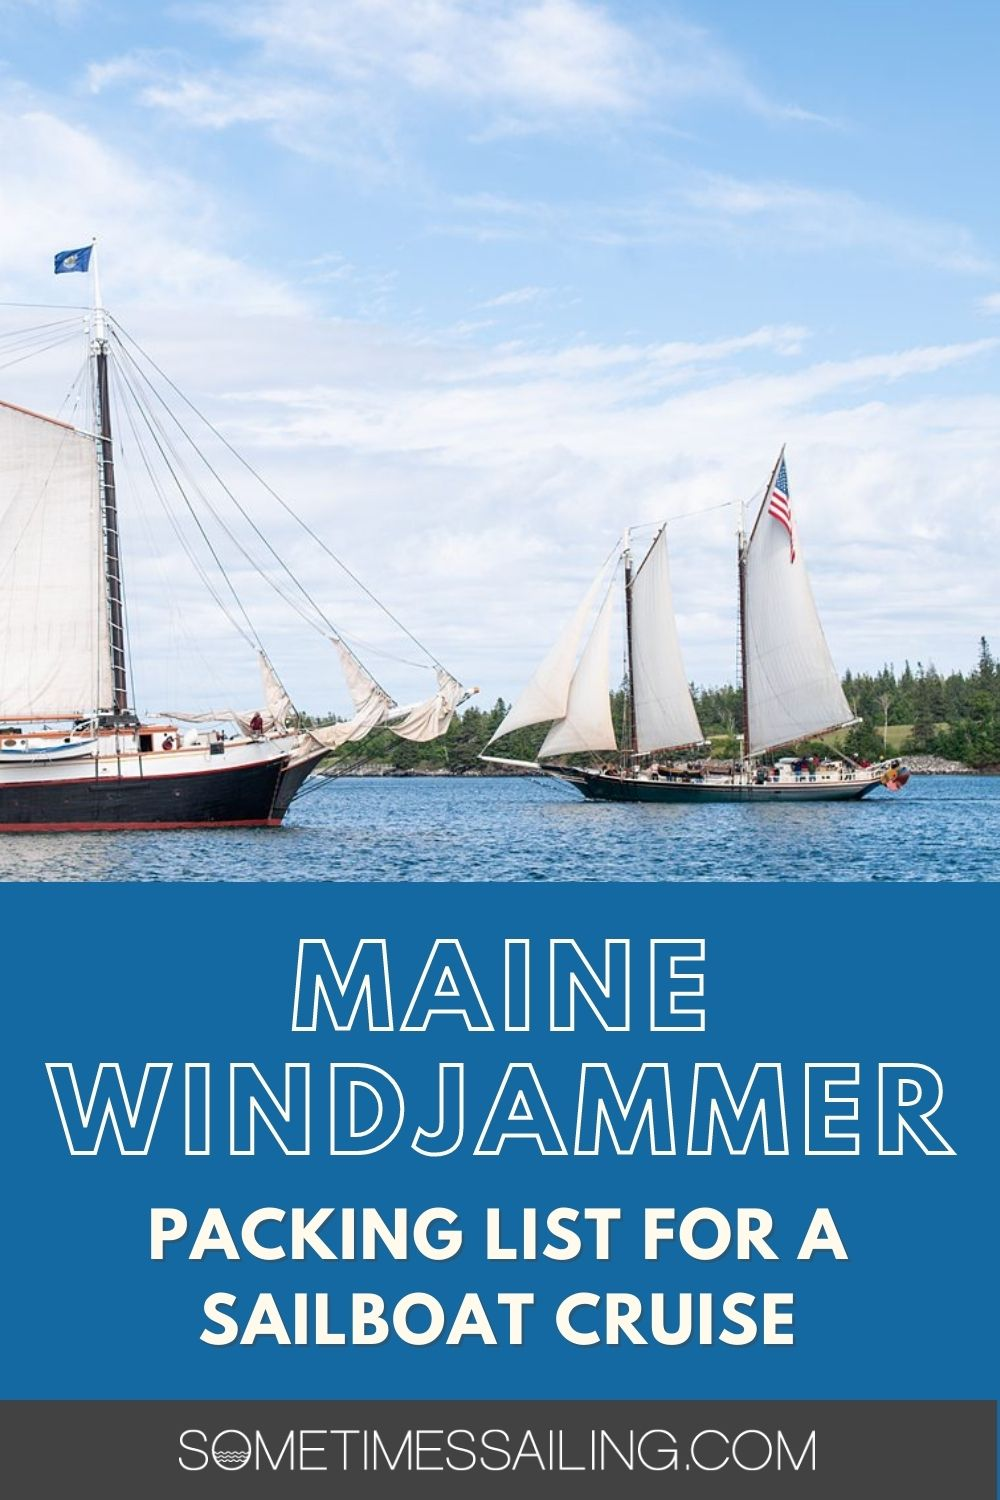 Maine Windjammer Packing List for a sailboat cruise, with a picture of two sailboats in the distance on the left and right.